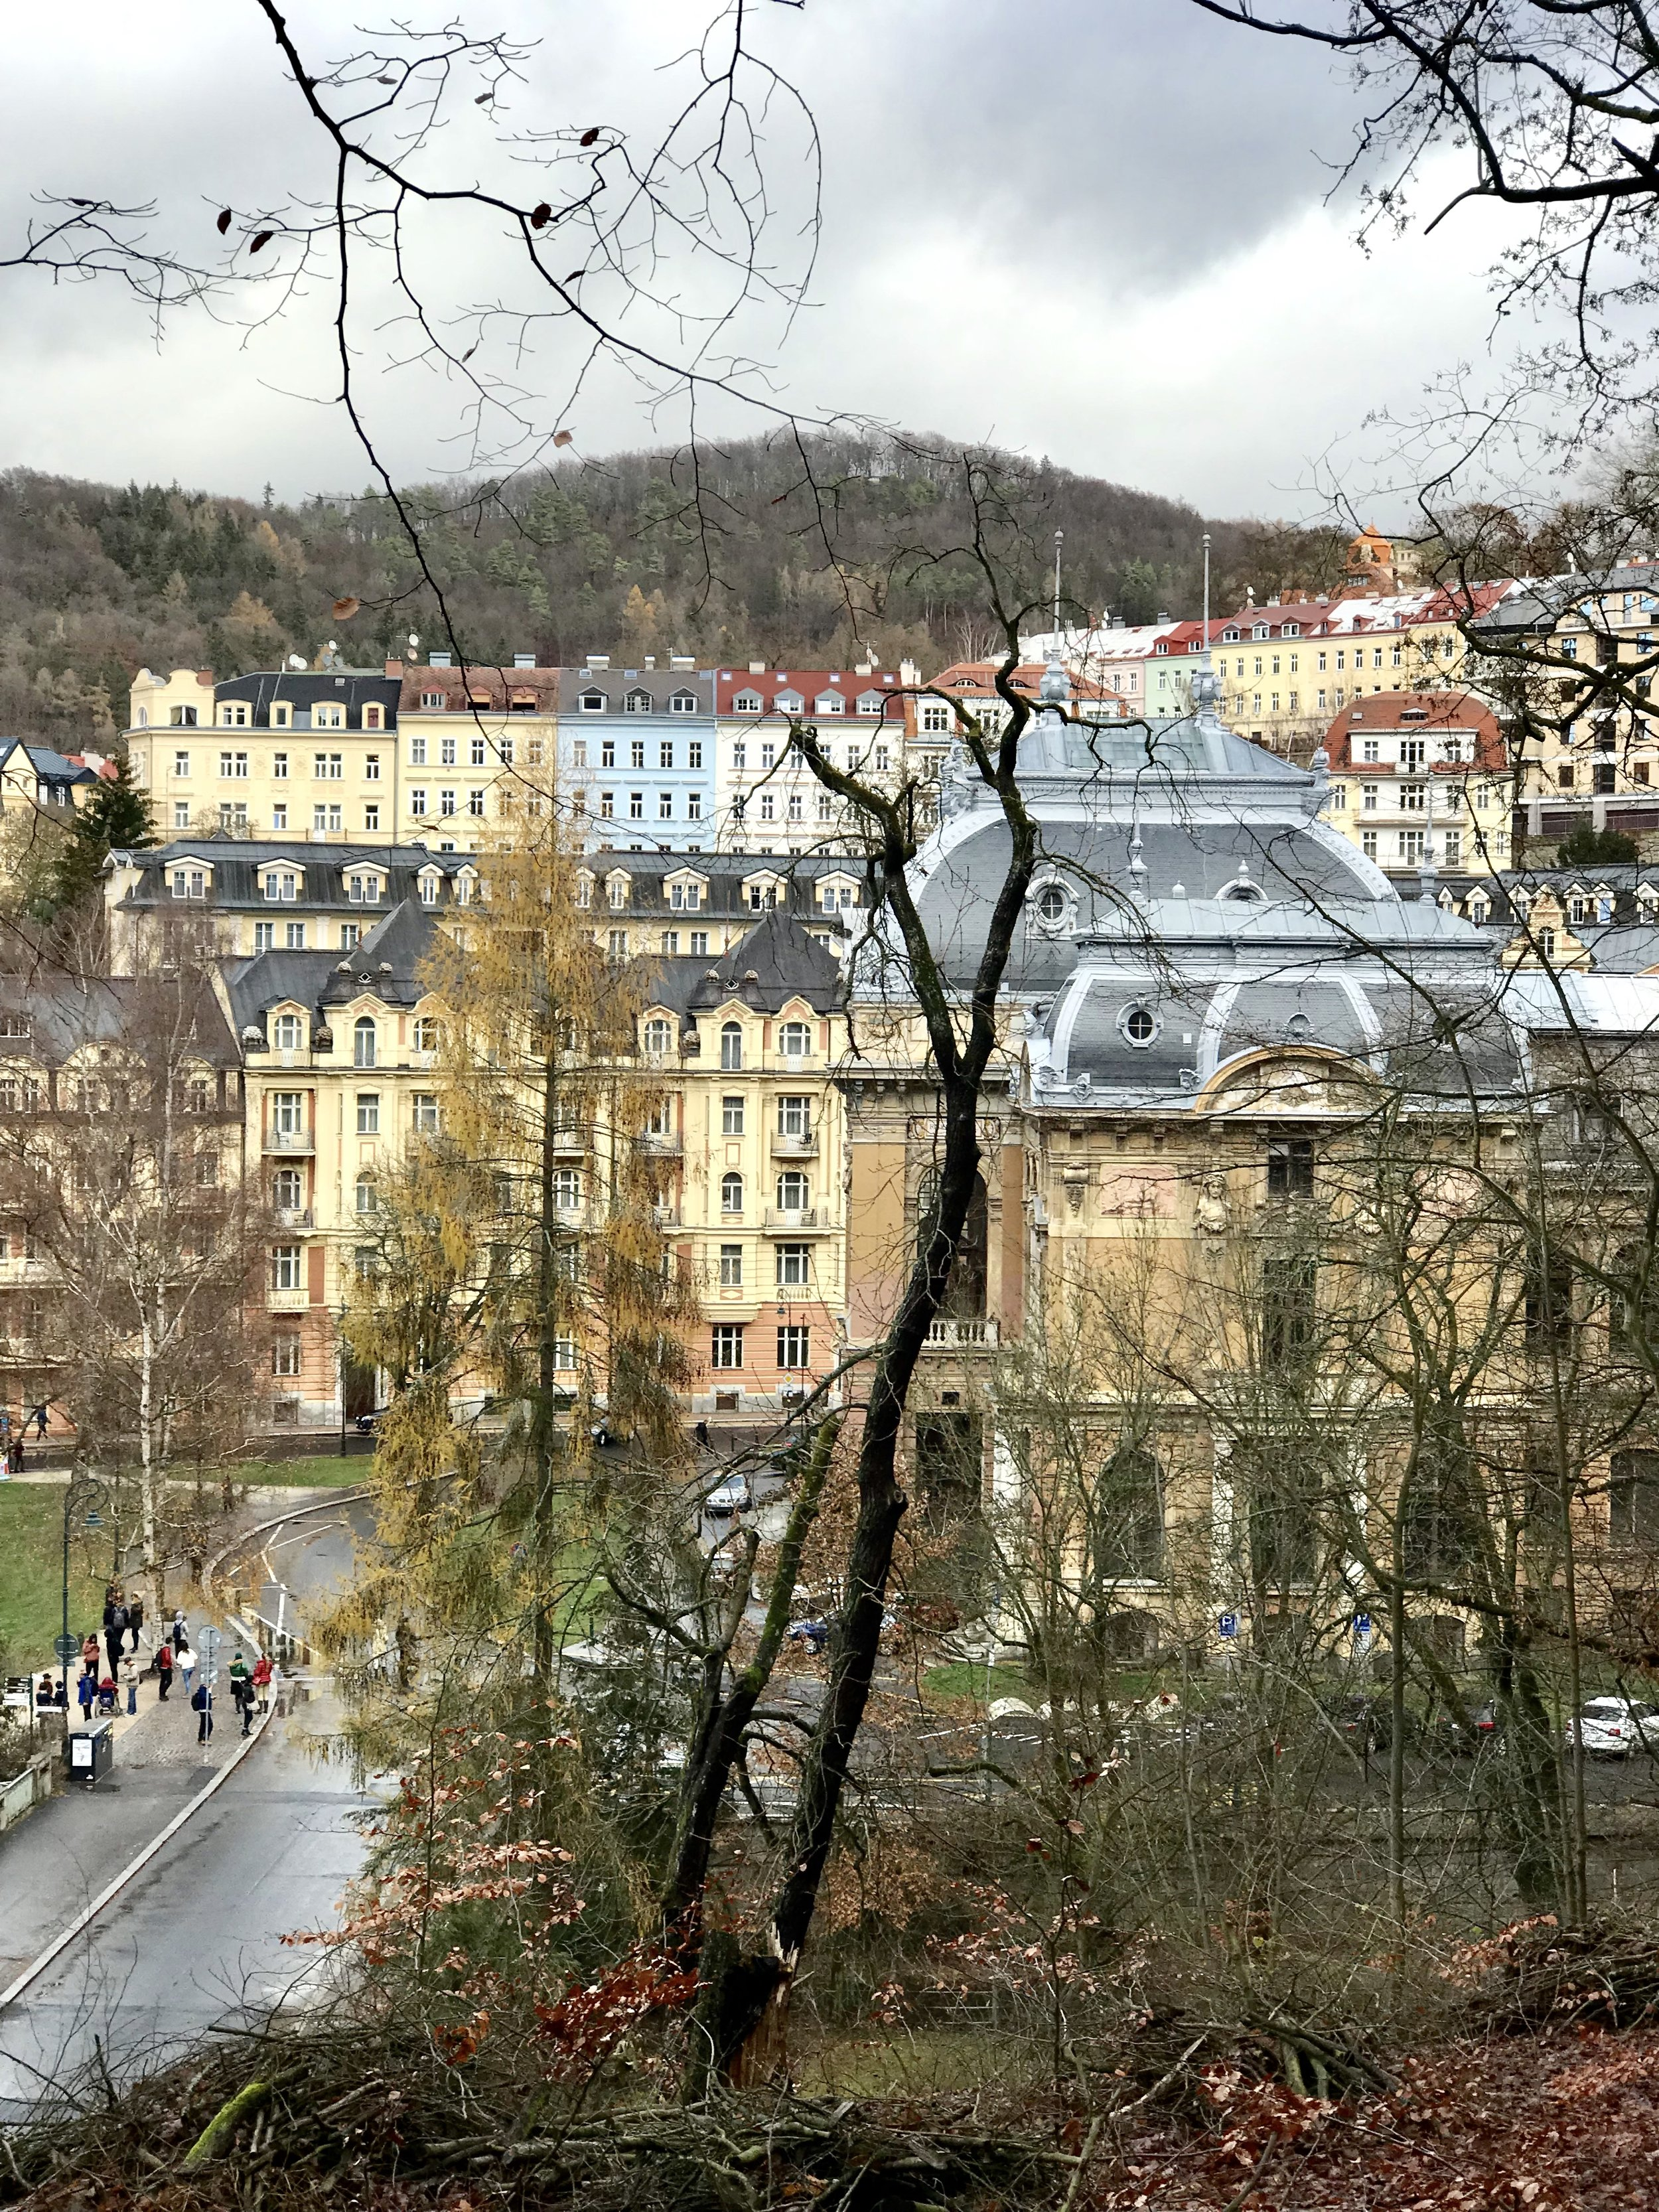 View of Karlovy Vary from one of the hiking trails - taken from iPhone 7+